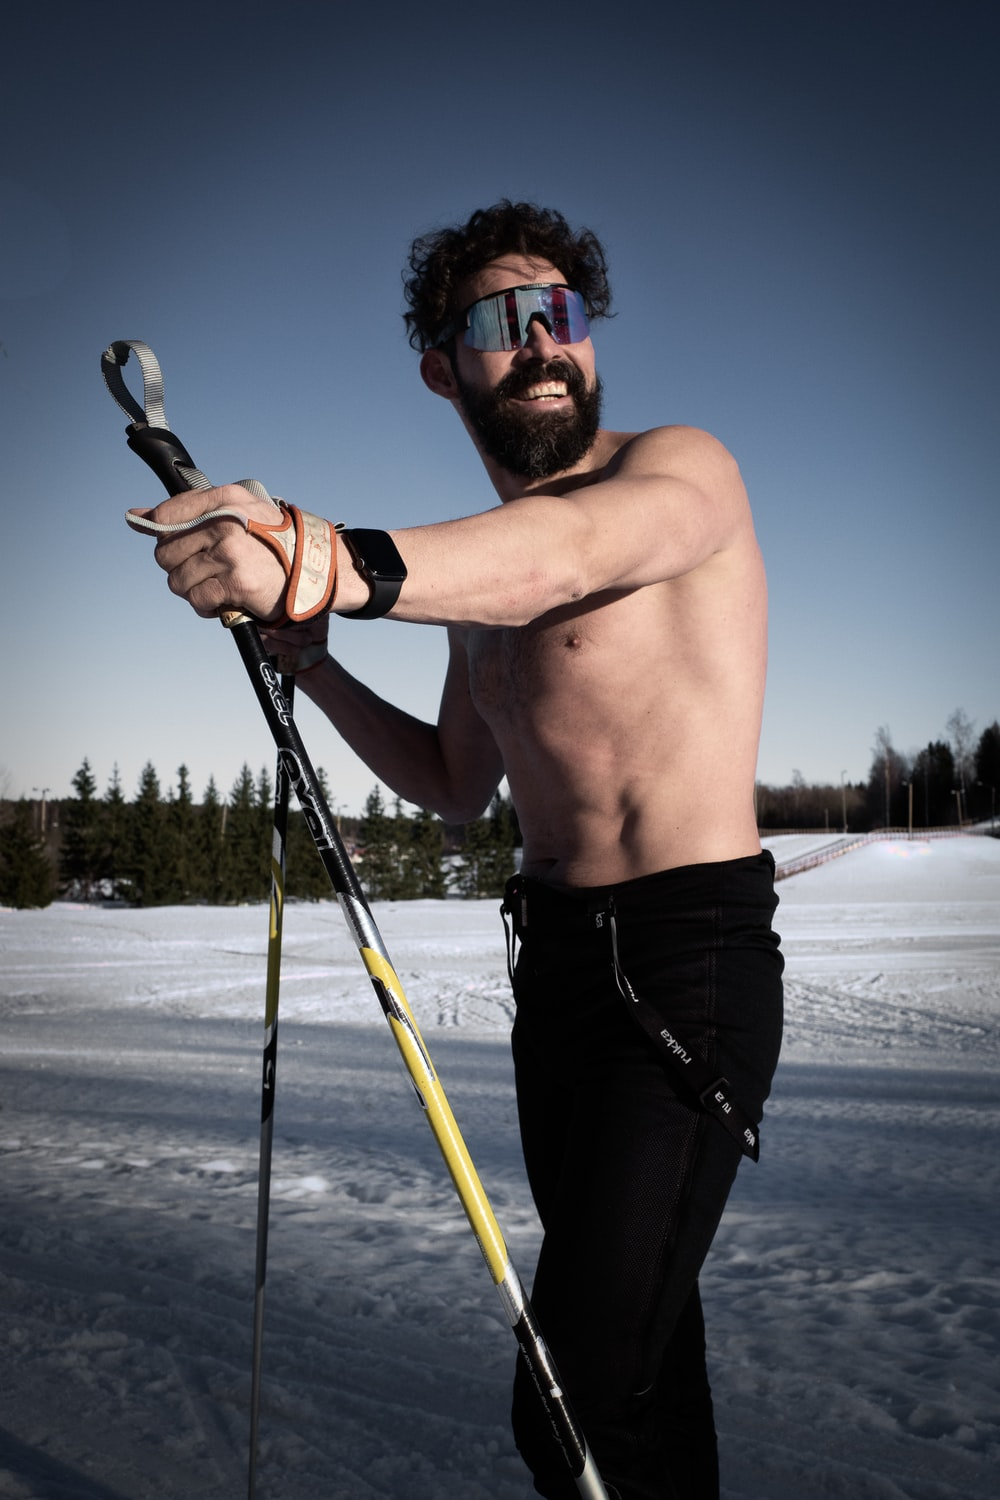 man in black shorts holding black and yellow ski pole